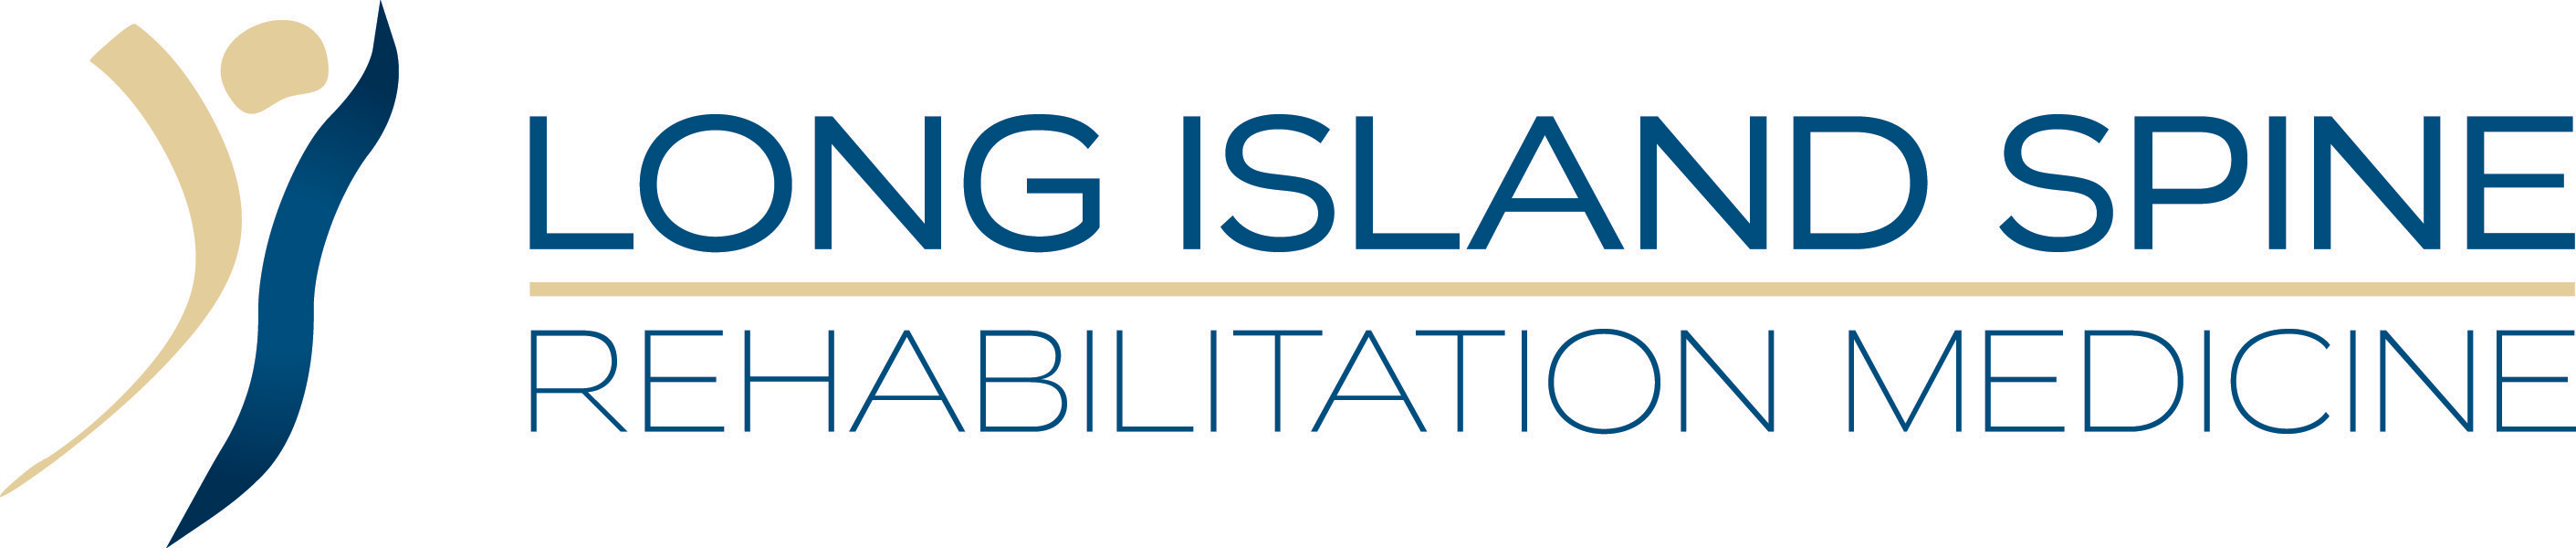 Long Island Spine Rehabilitation Medicine - Great Neck